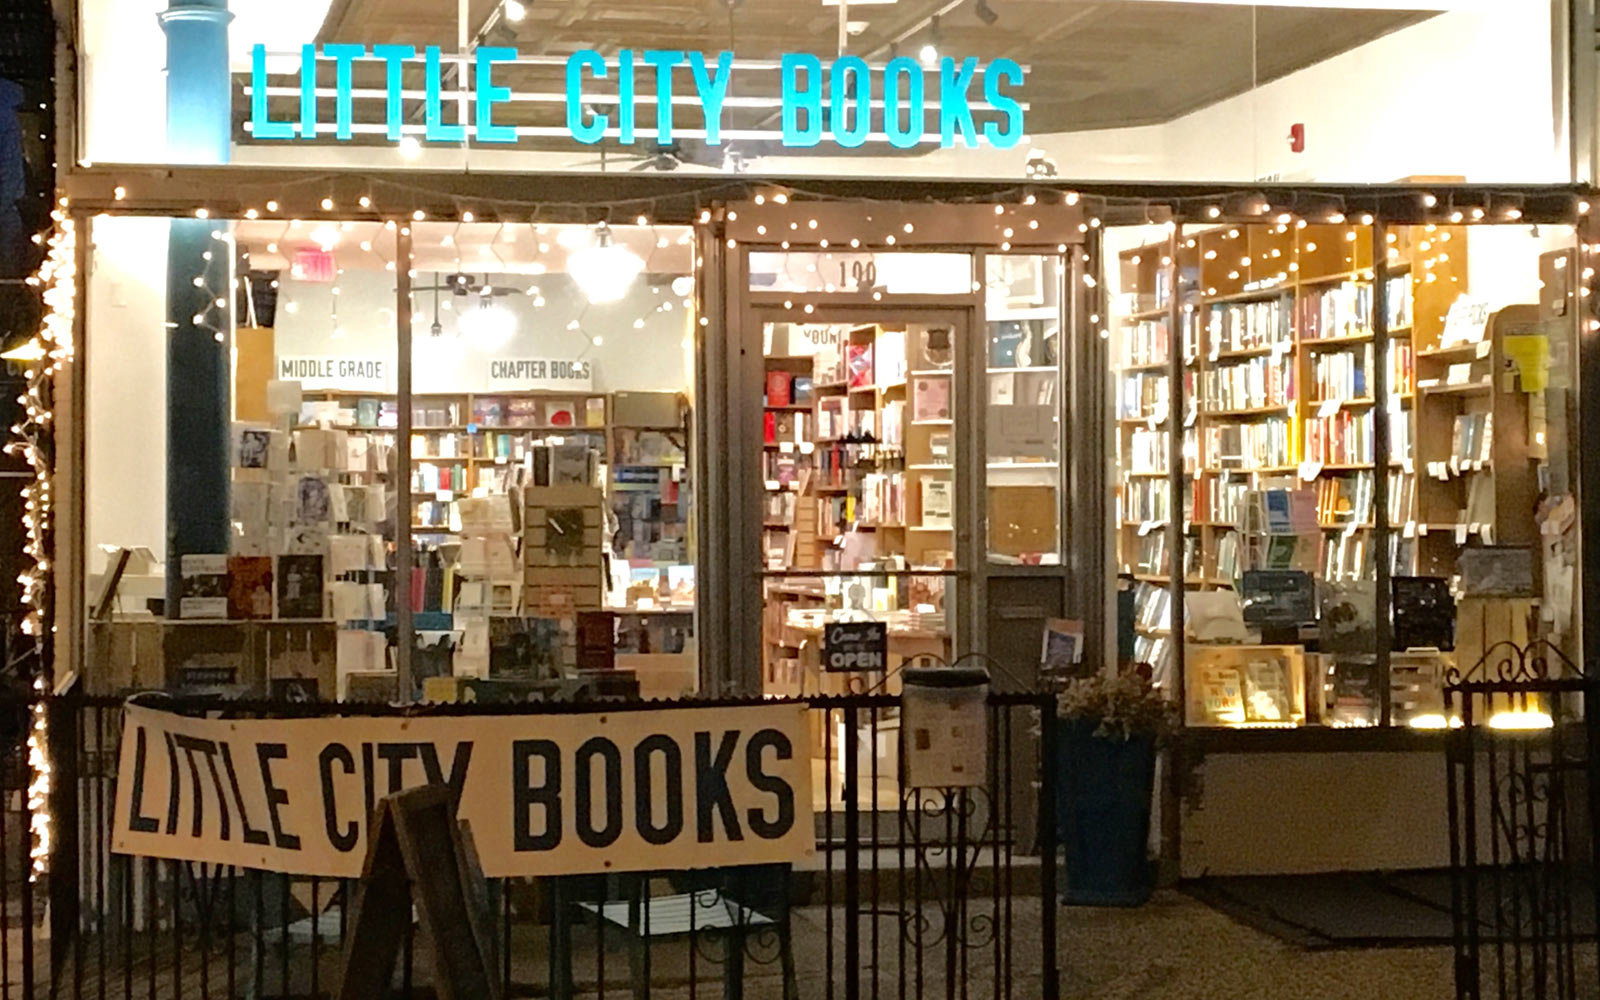 Little City Books, Hoboken, New Jersey